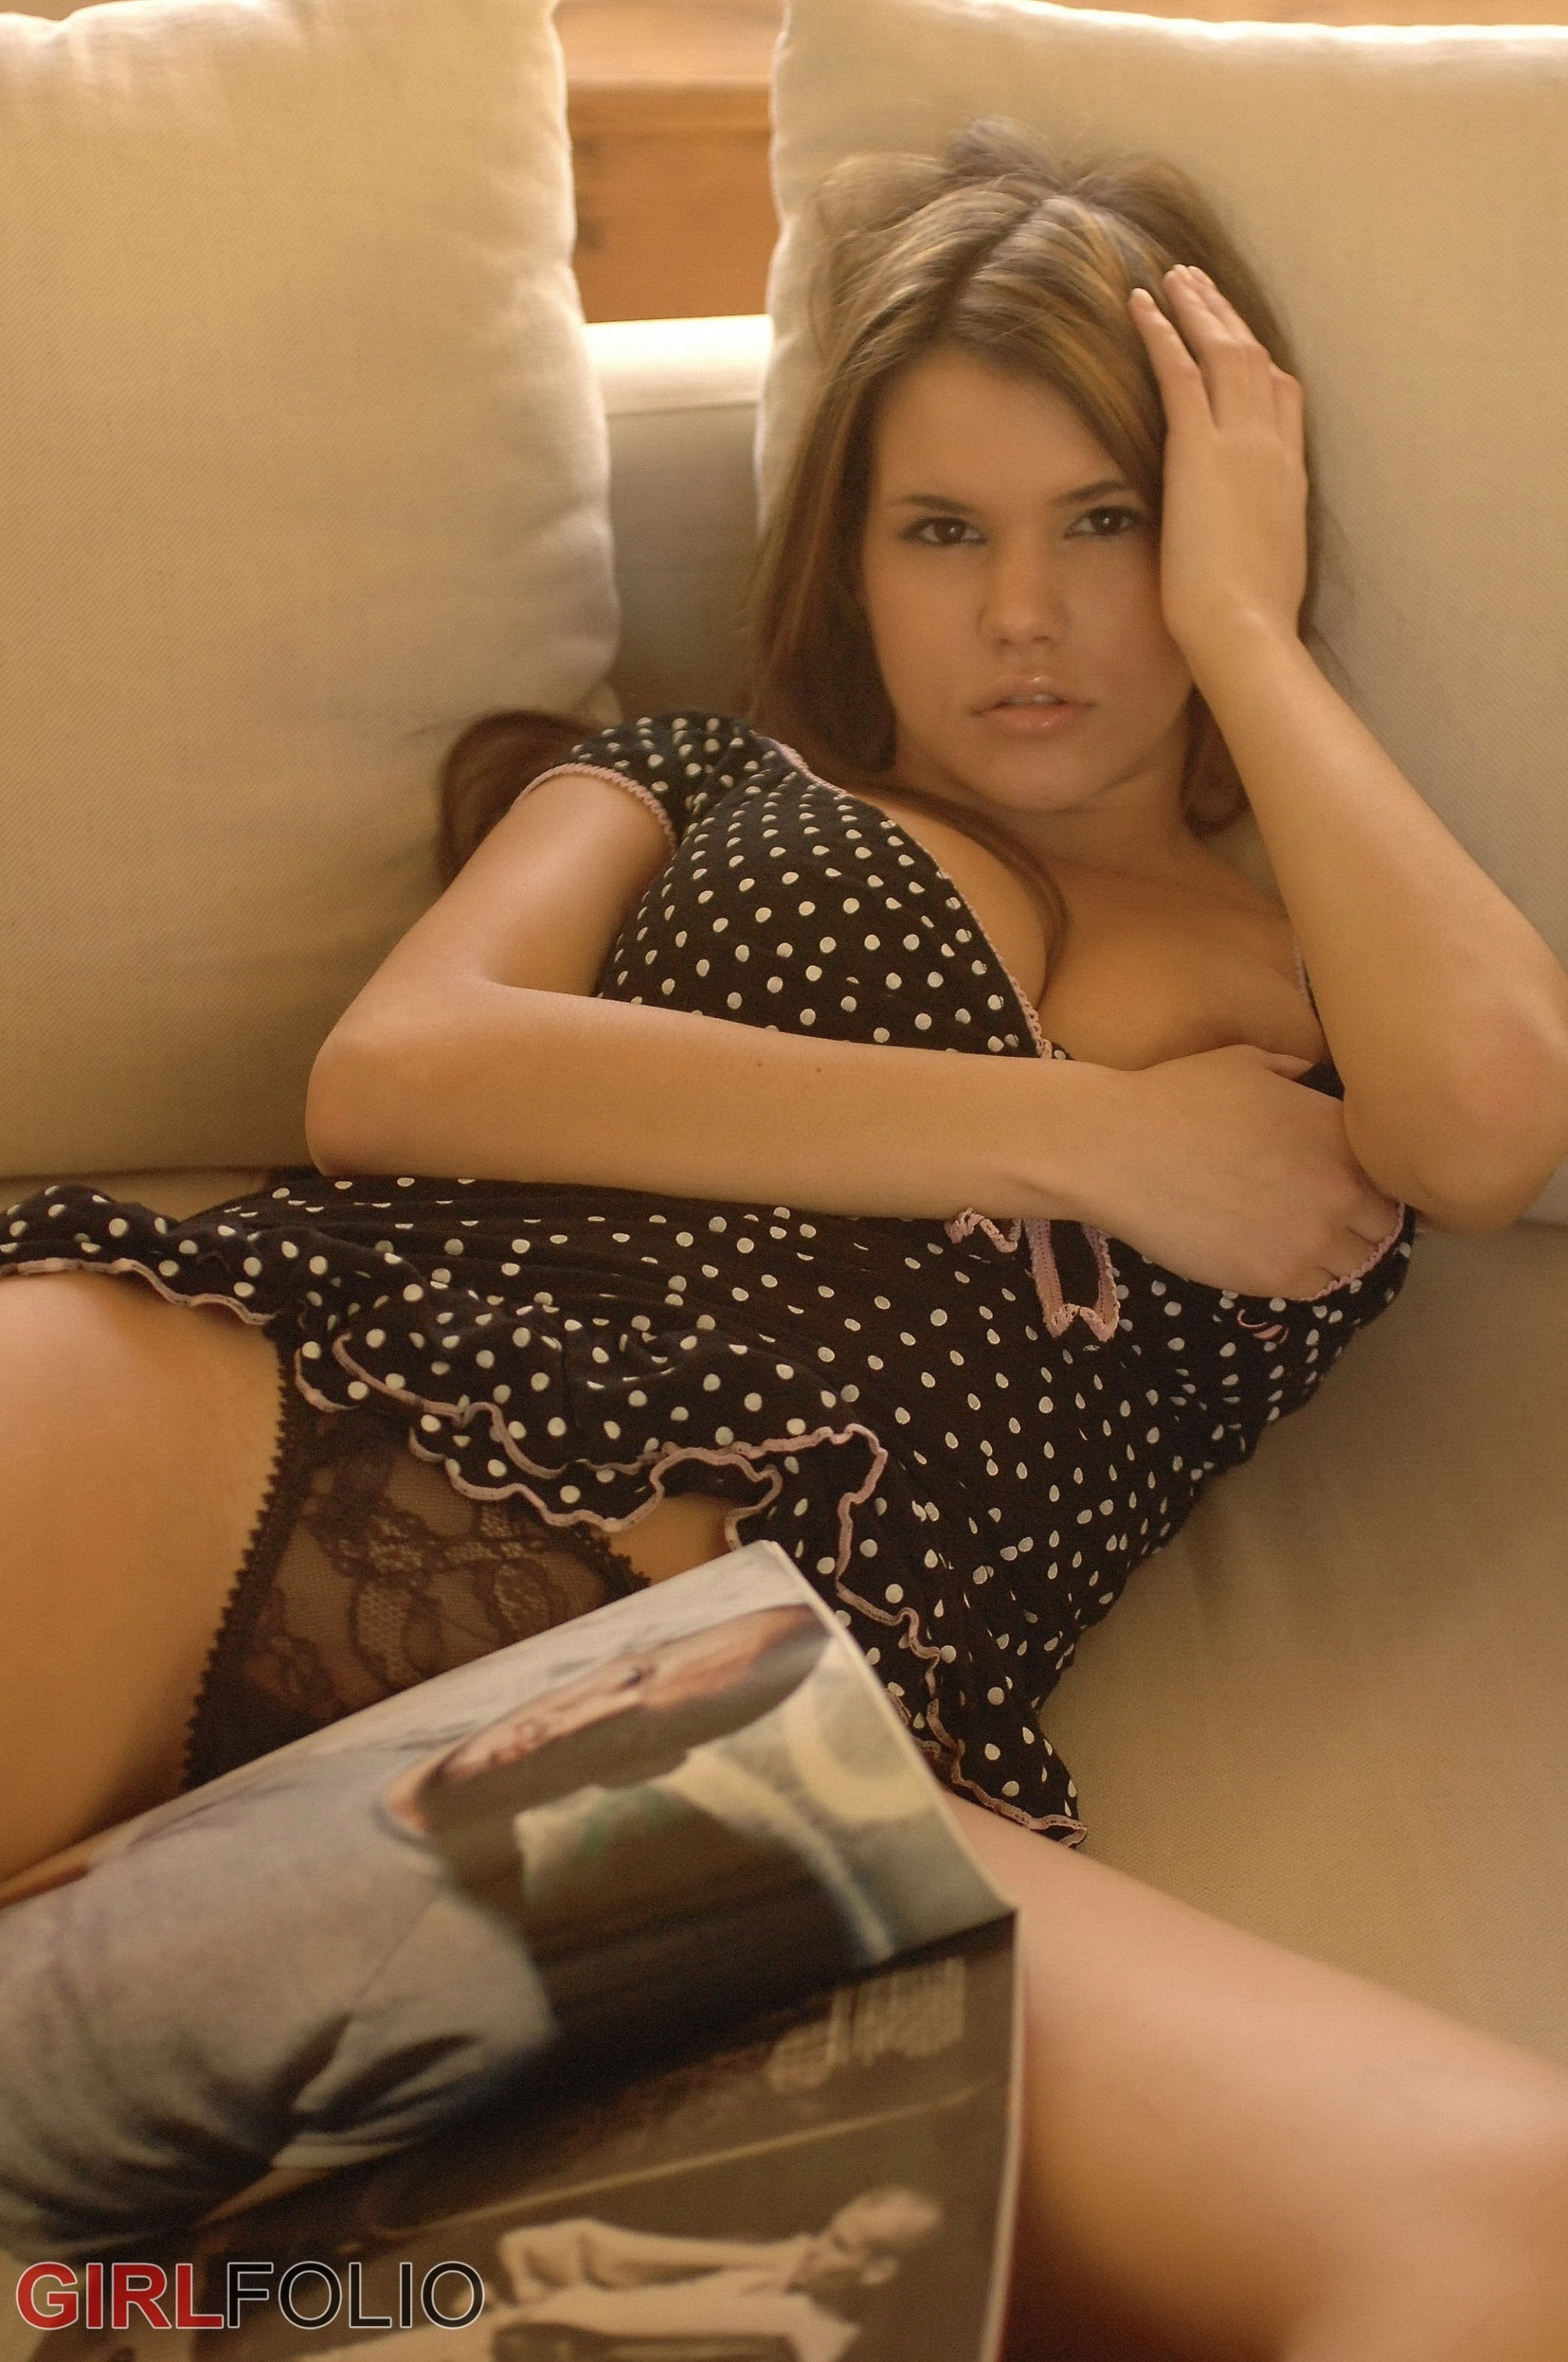 Isabella, french brunette with wonderful legs crouching down #8